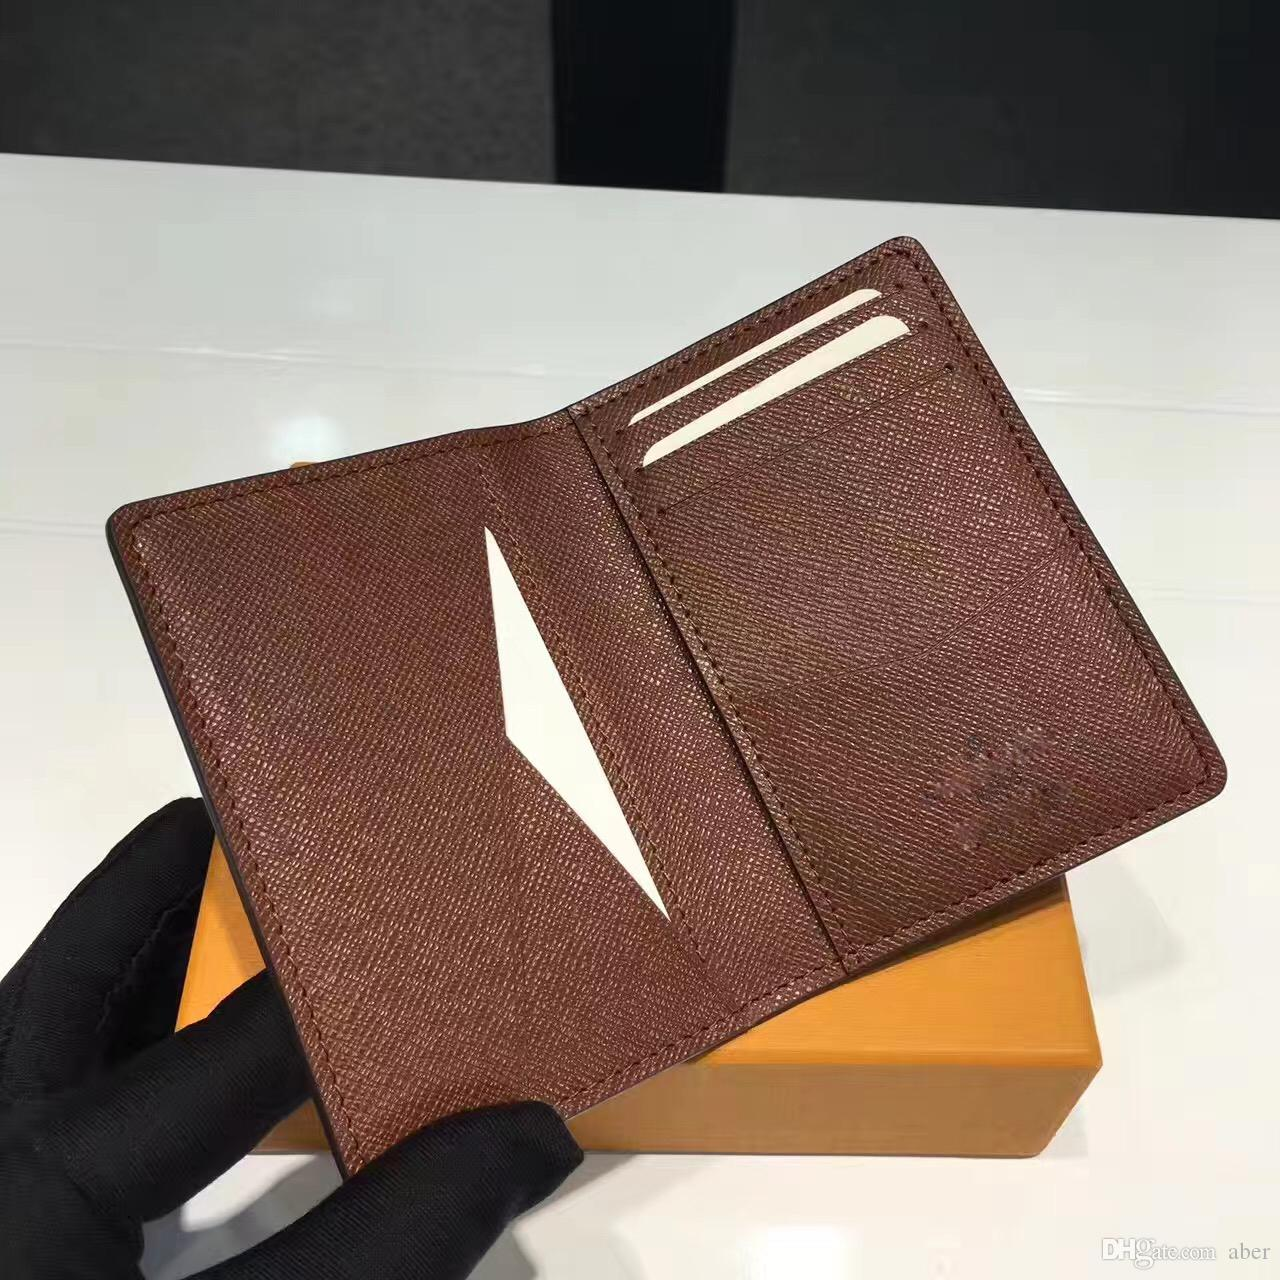 0e55927ecc34 Excellent Quality Pocket Organiser NM Damier Graphite M60502 Mens Real  Leather Wallets Card Holder N63145 N63144 Purse Id Wallet Bifold Bags  Crossbody Bags ...